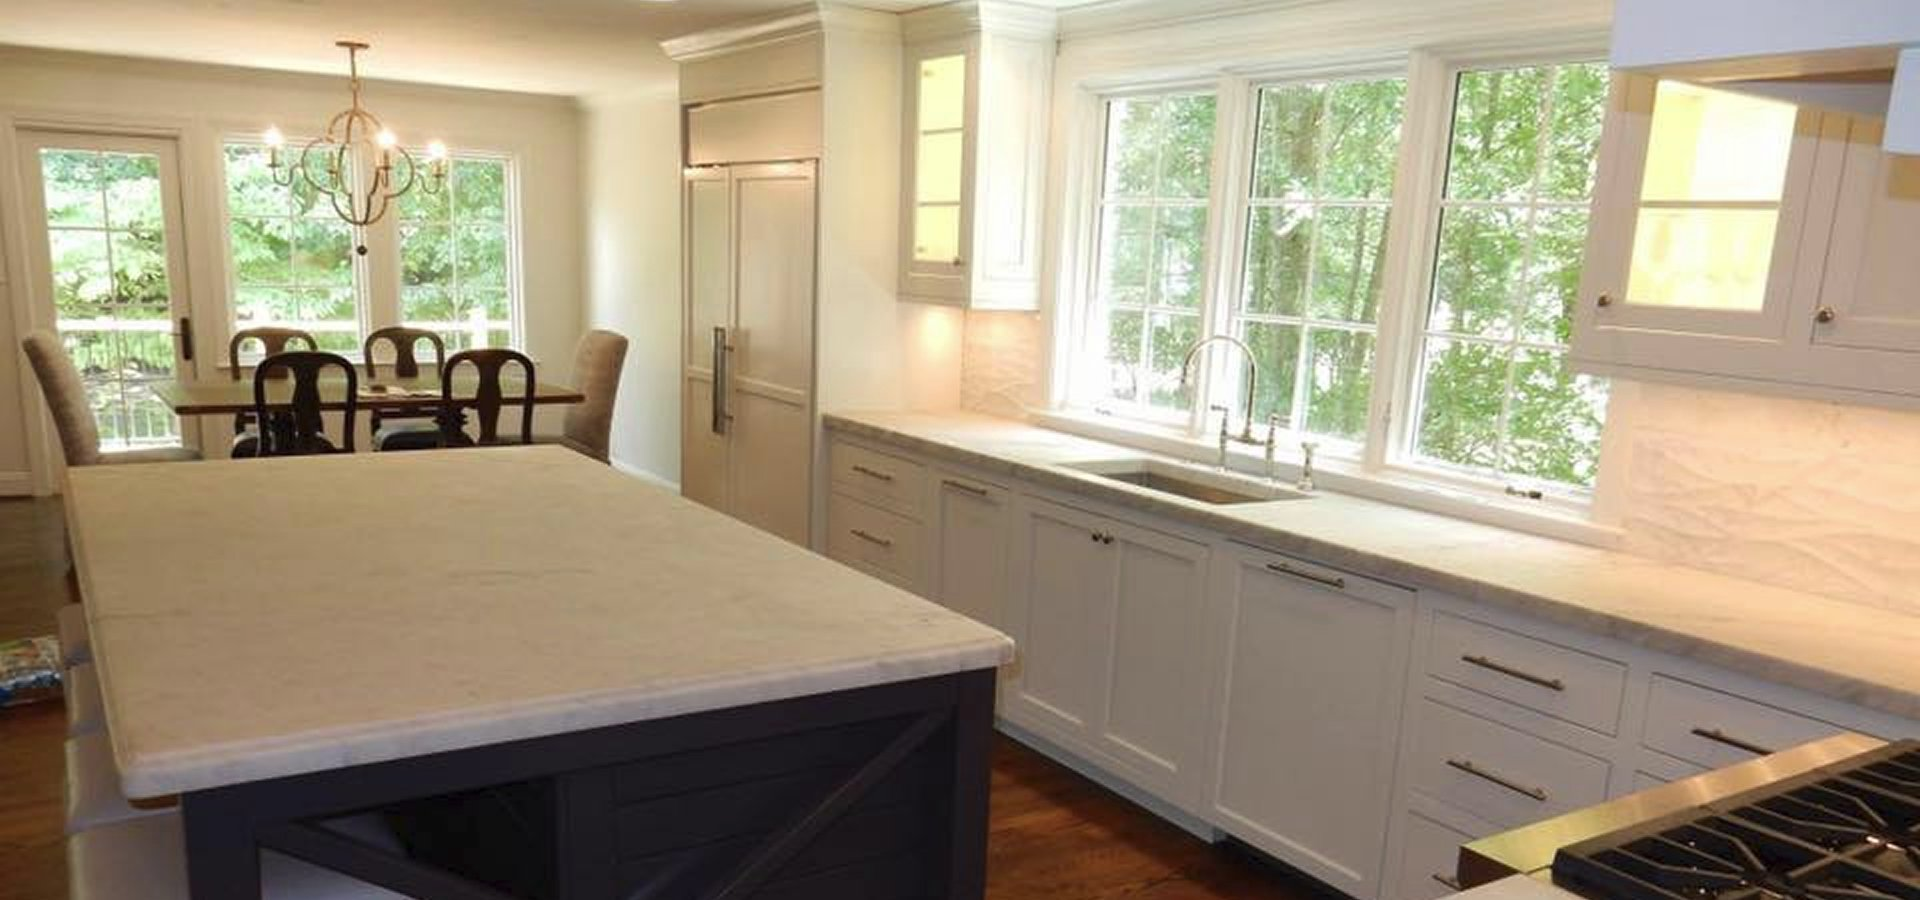 Birmingham construction and remodeling contractor